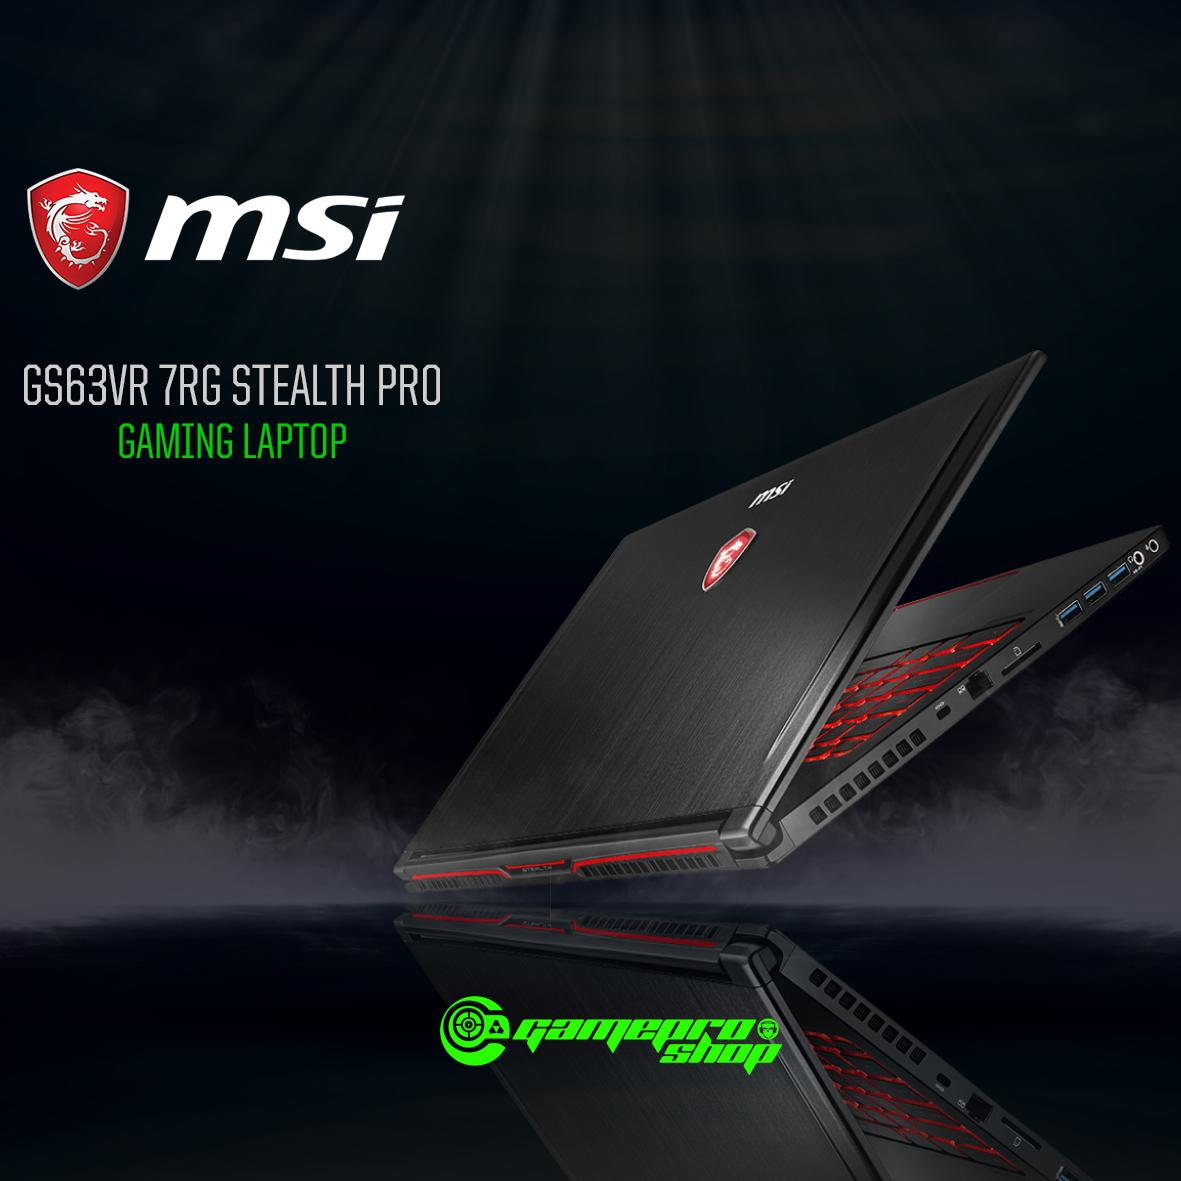 MSI GS63VR 7RG Stealth Pro-086SG (I7-7700HQ/16GB DDR4/256GB SSD +2TB HDD/8GB NVIDIA GTX1070) GAMING LAPTOP *COMEX PROMO*